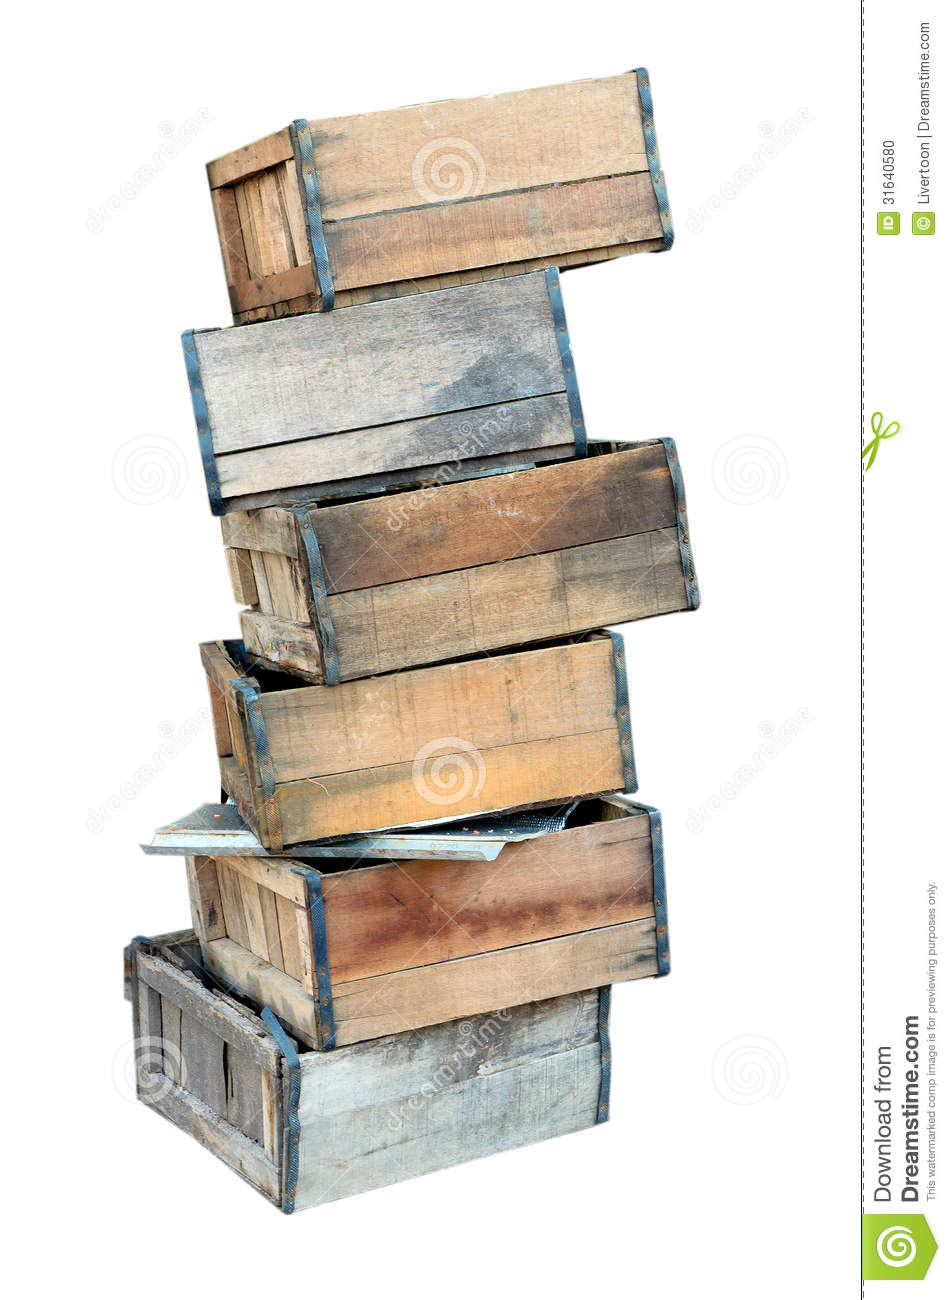 Stacked old wooden crates stock photo image 31640580 for Where to find old wooden crates